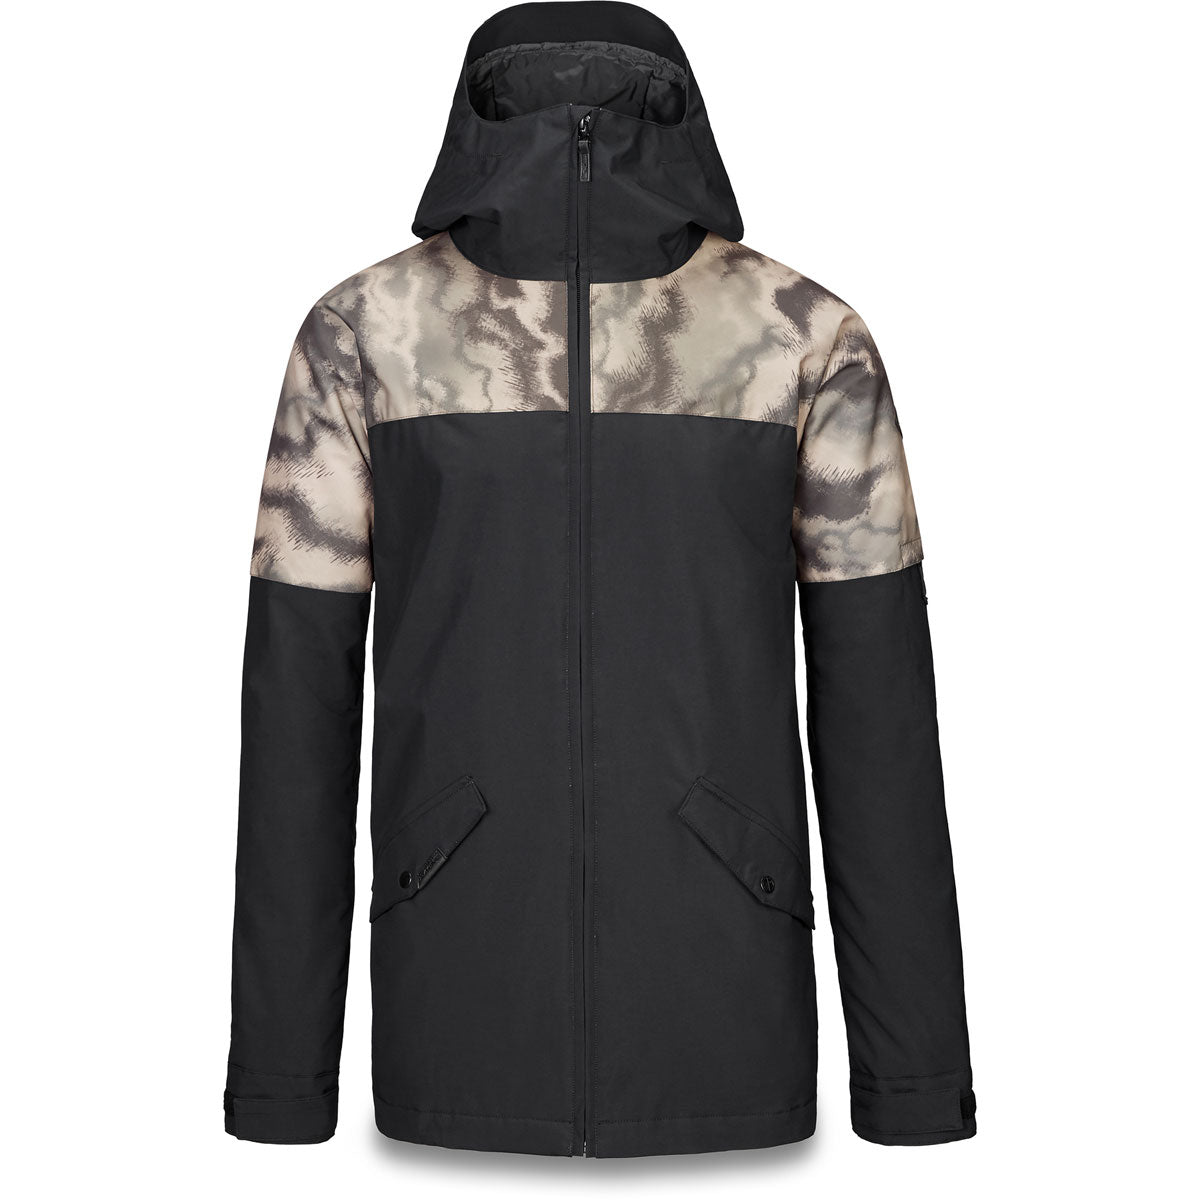 Dakine Denison Jacket - Mens Black/Ash Camo